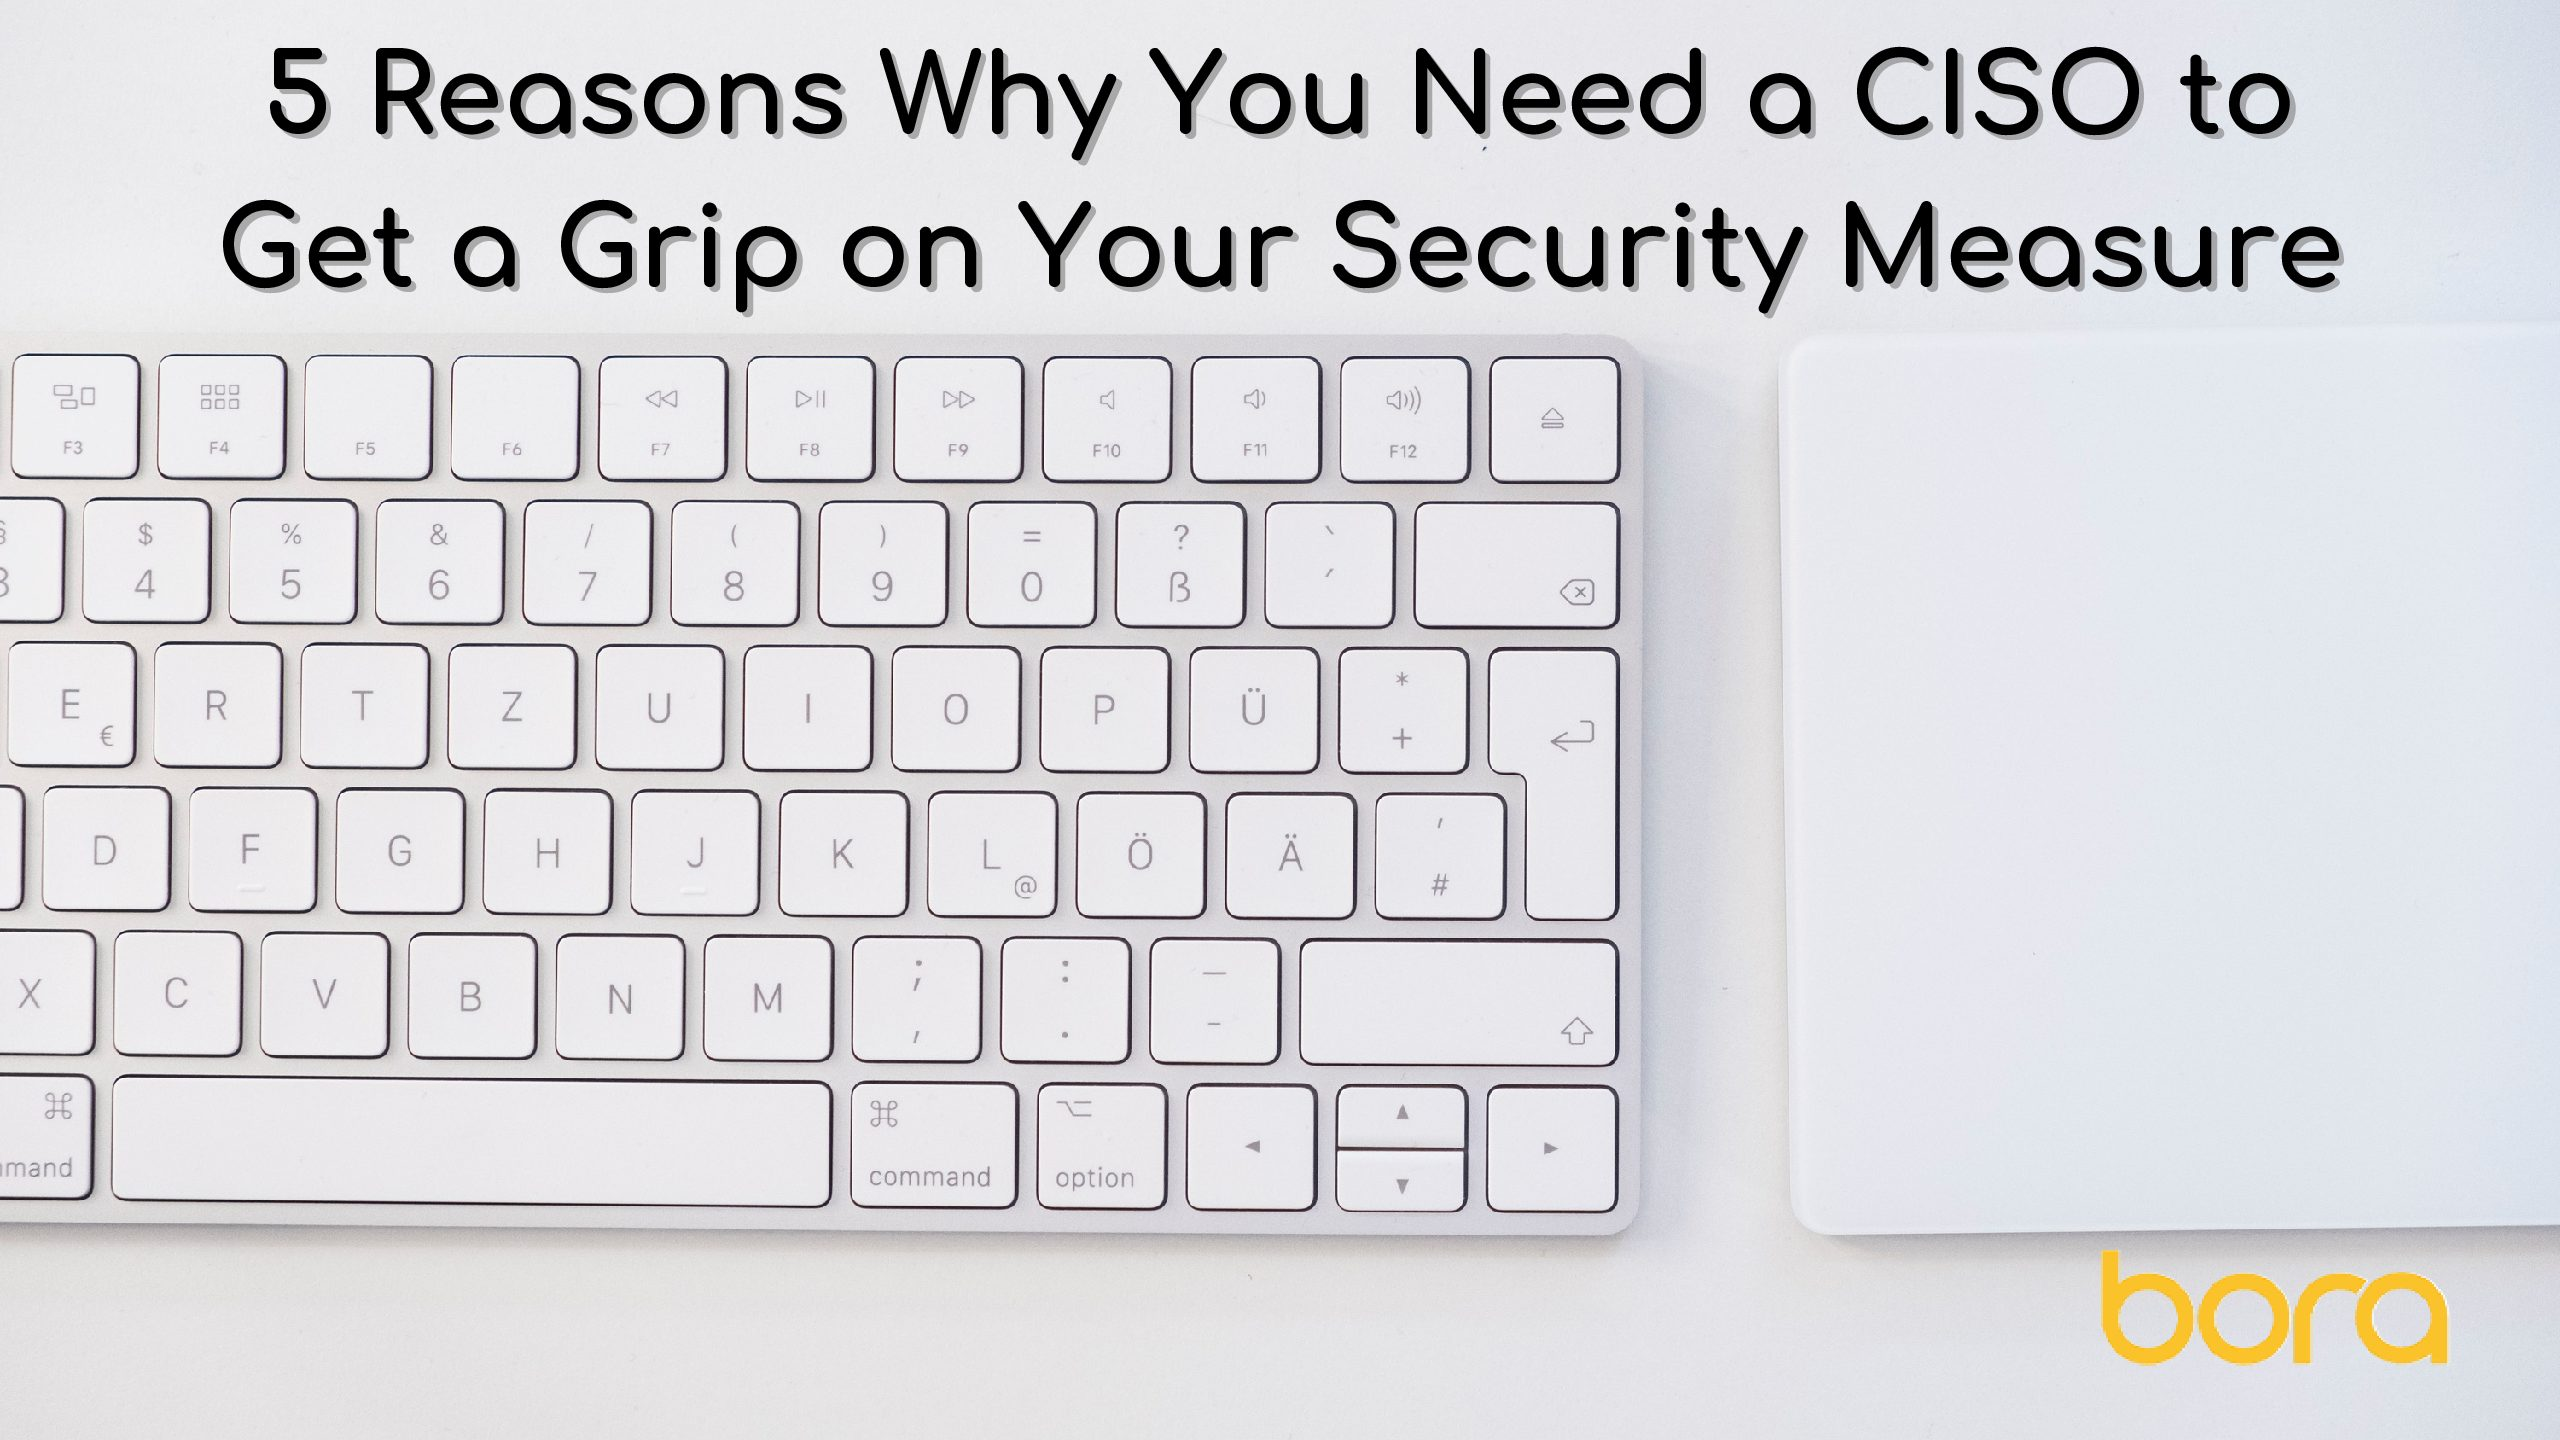 5 Reasons Why You Need a CISO to Get a Grip on Your Security Measure